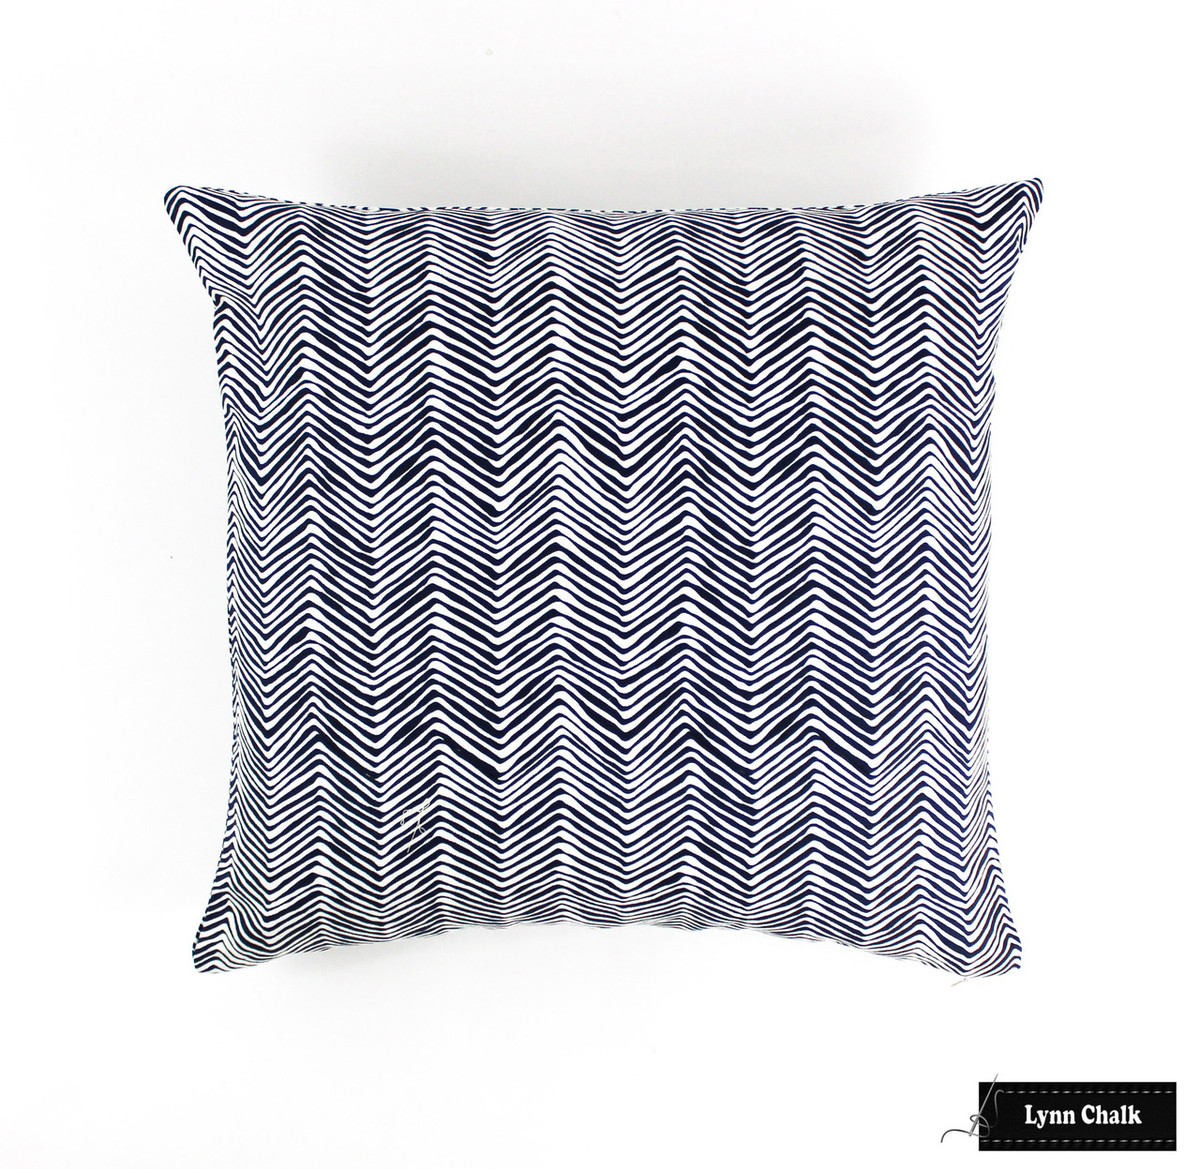 quadrille alan campbell petite zig zag pillow in new navy on white - on sale quadrille alan campbell petite zig zag pillow in new navy on white(both